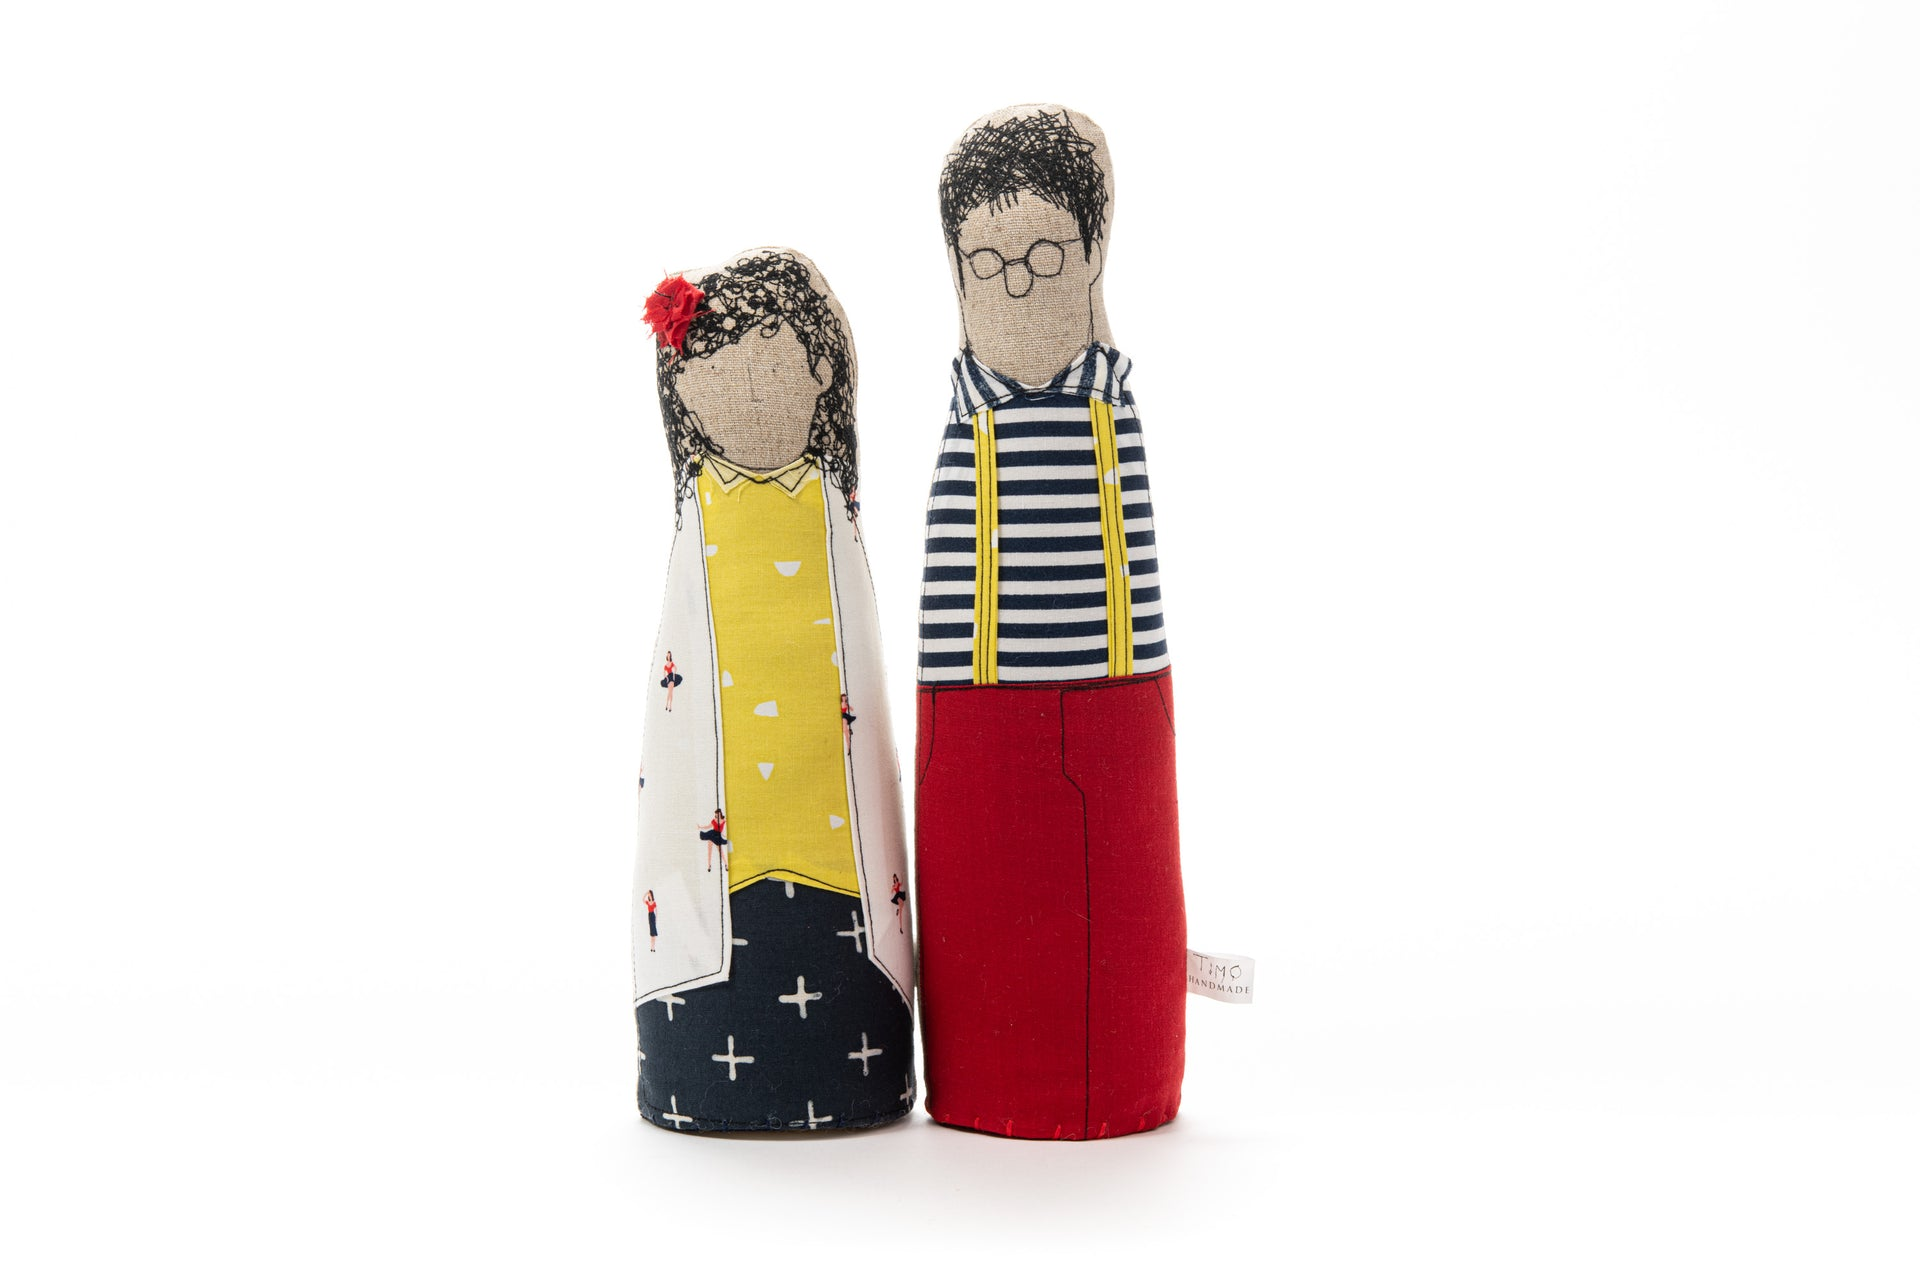 Family portrait dolls Dolls pair Soft sculpture Character dolls Likeness fabric dolls Couple gift Handmade decor Wedding anniversary gift